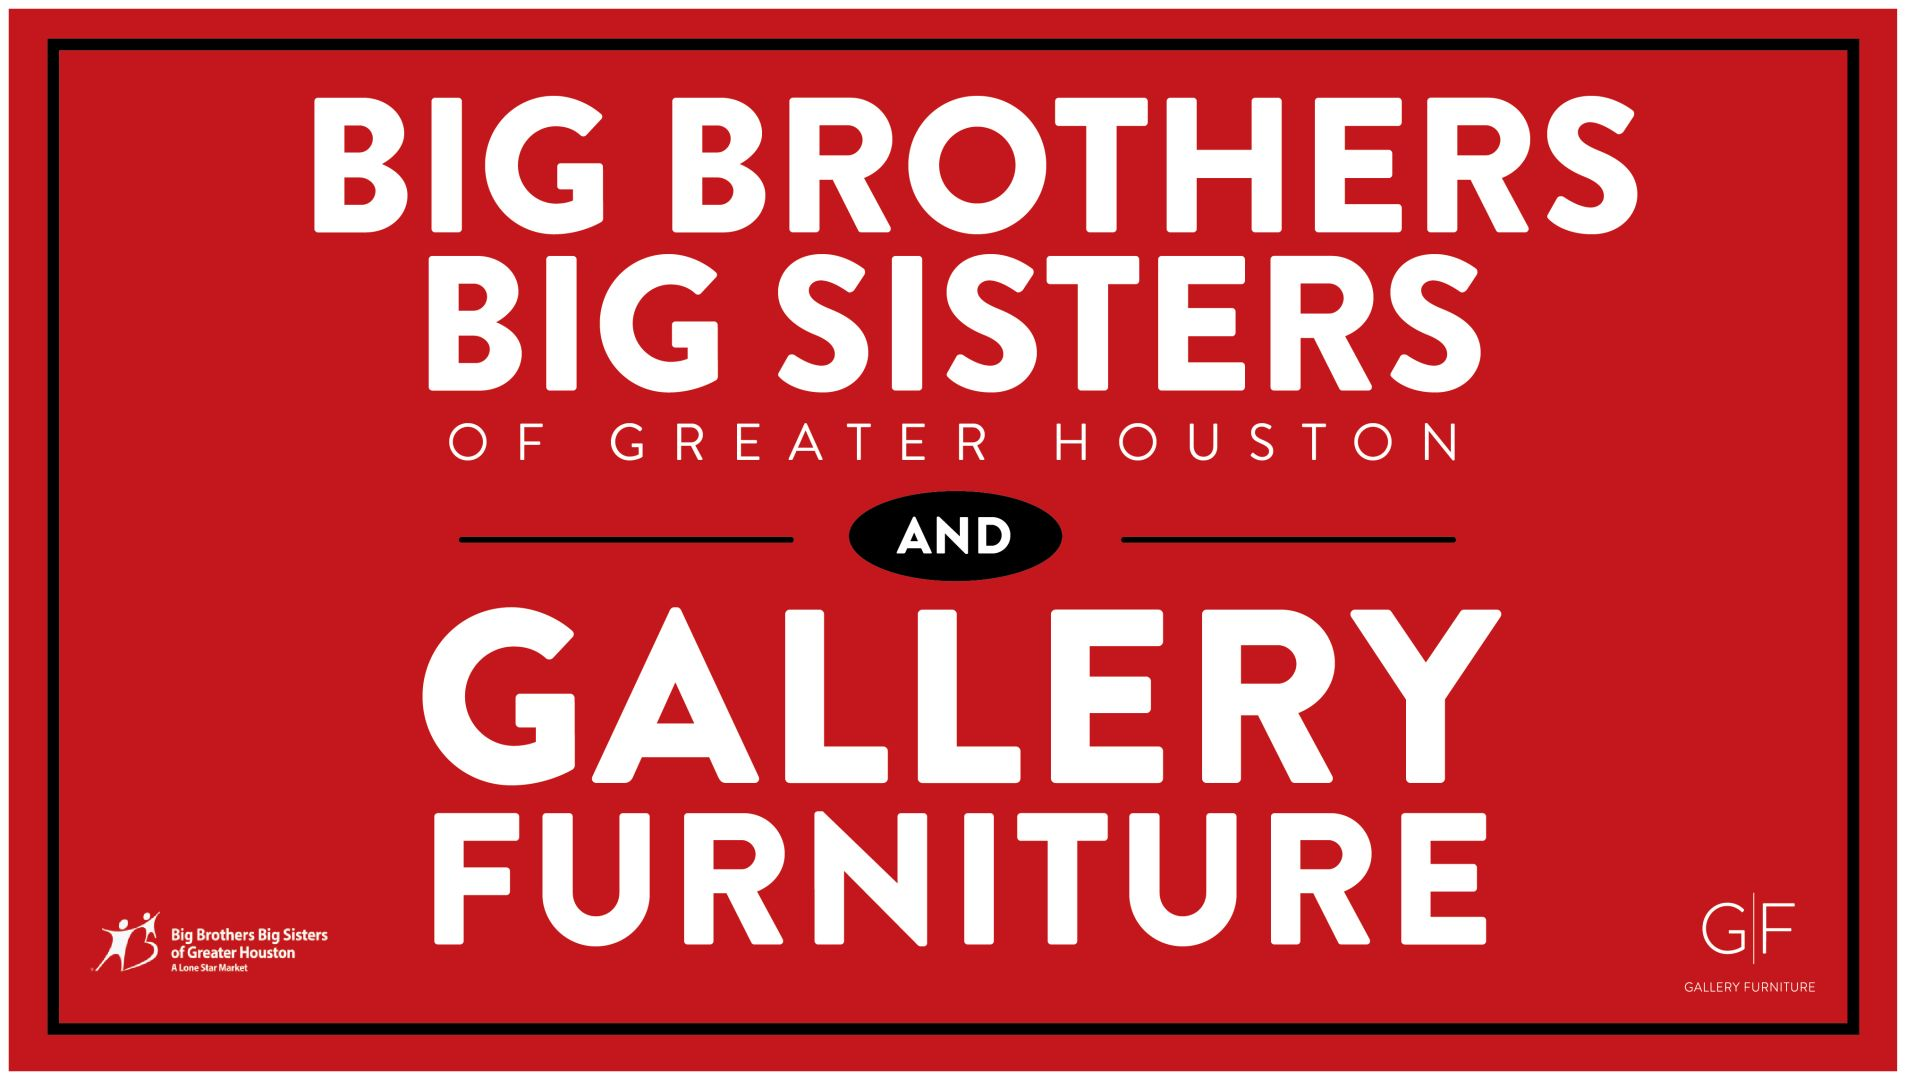 Big Brothers Big Sisters Joins Gallery Furniture In The Search For Mentors.